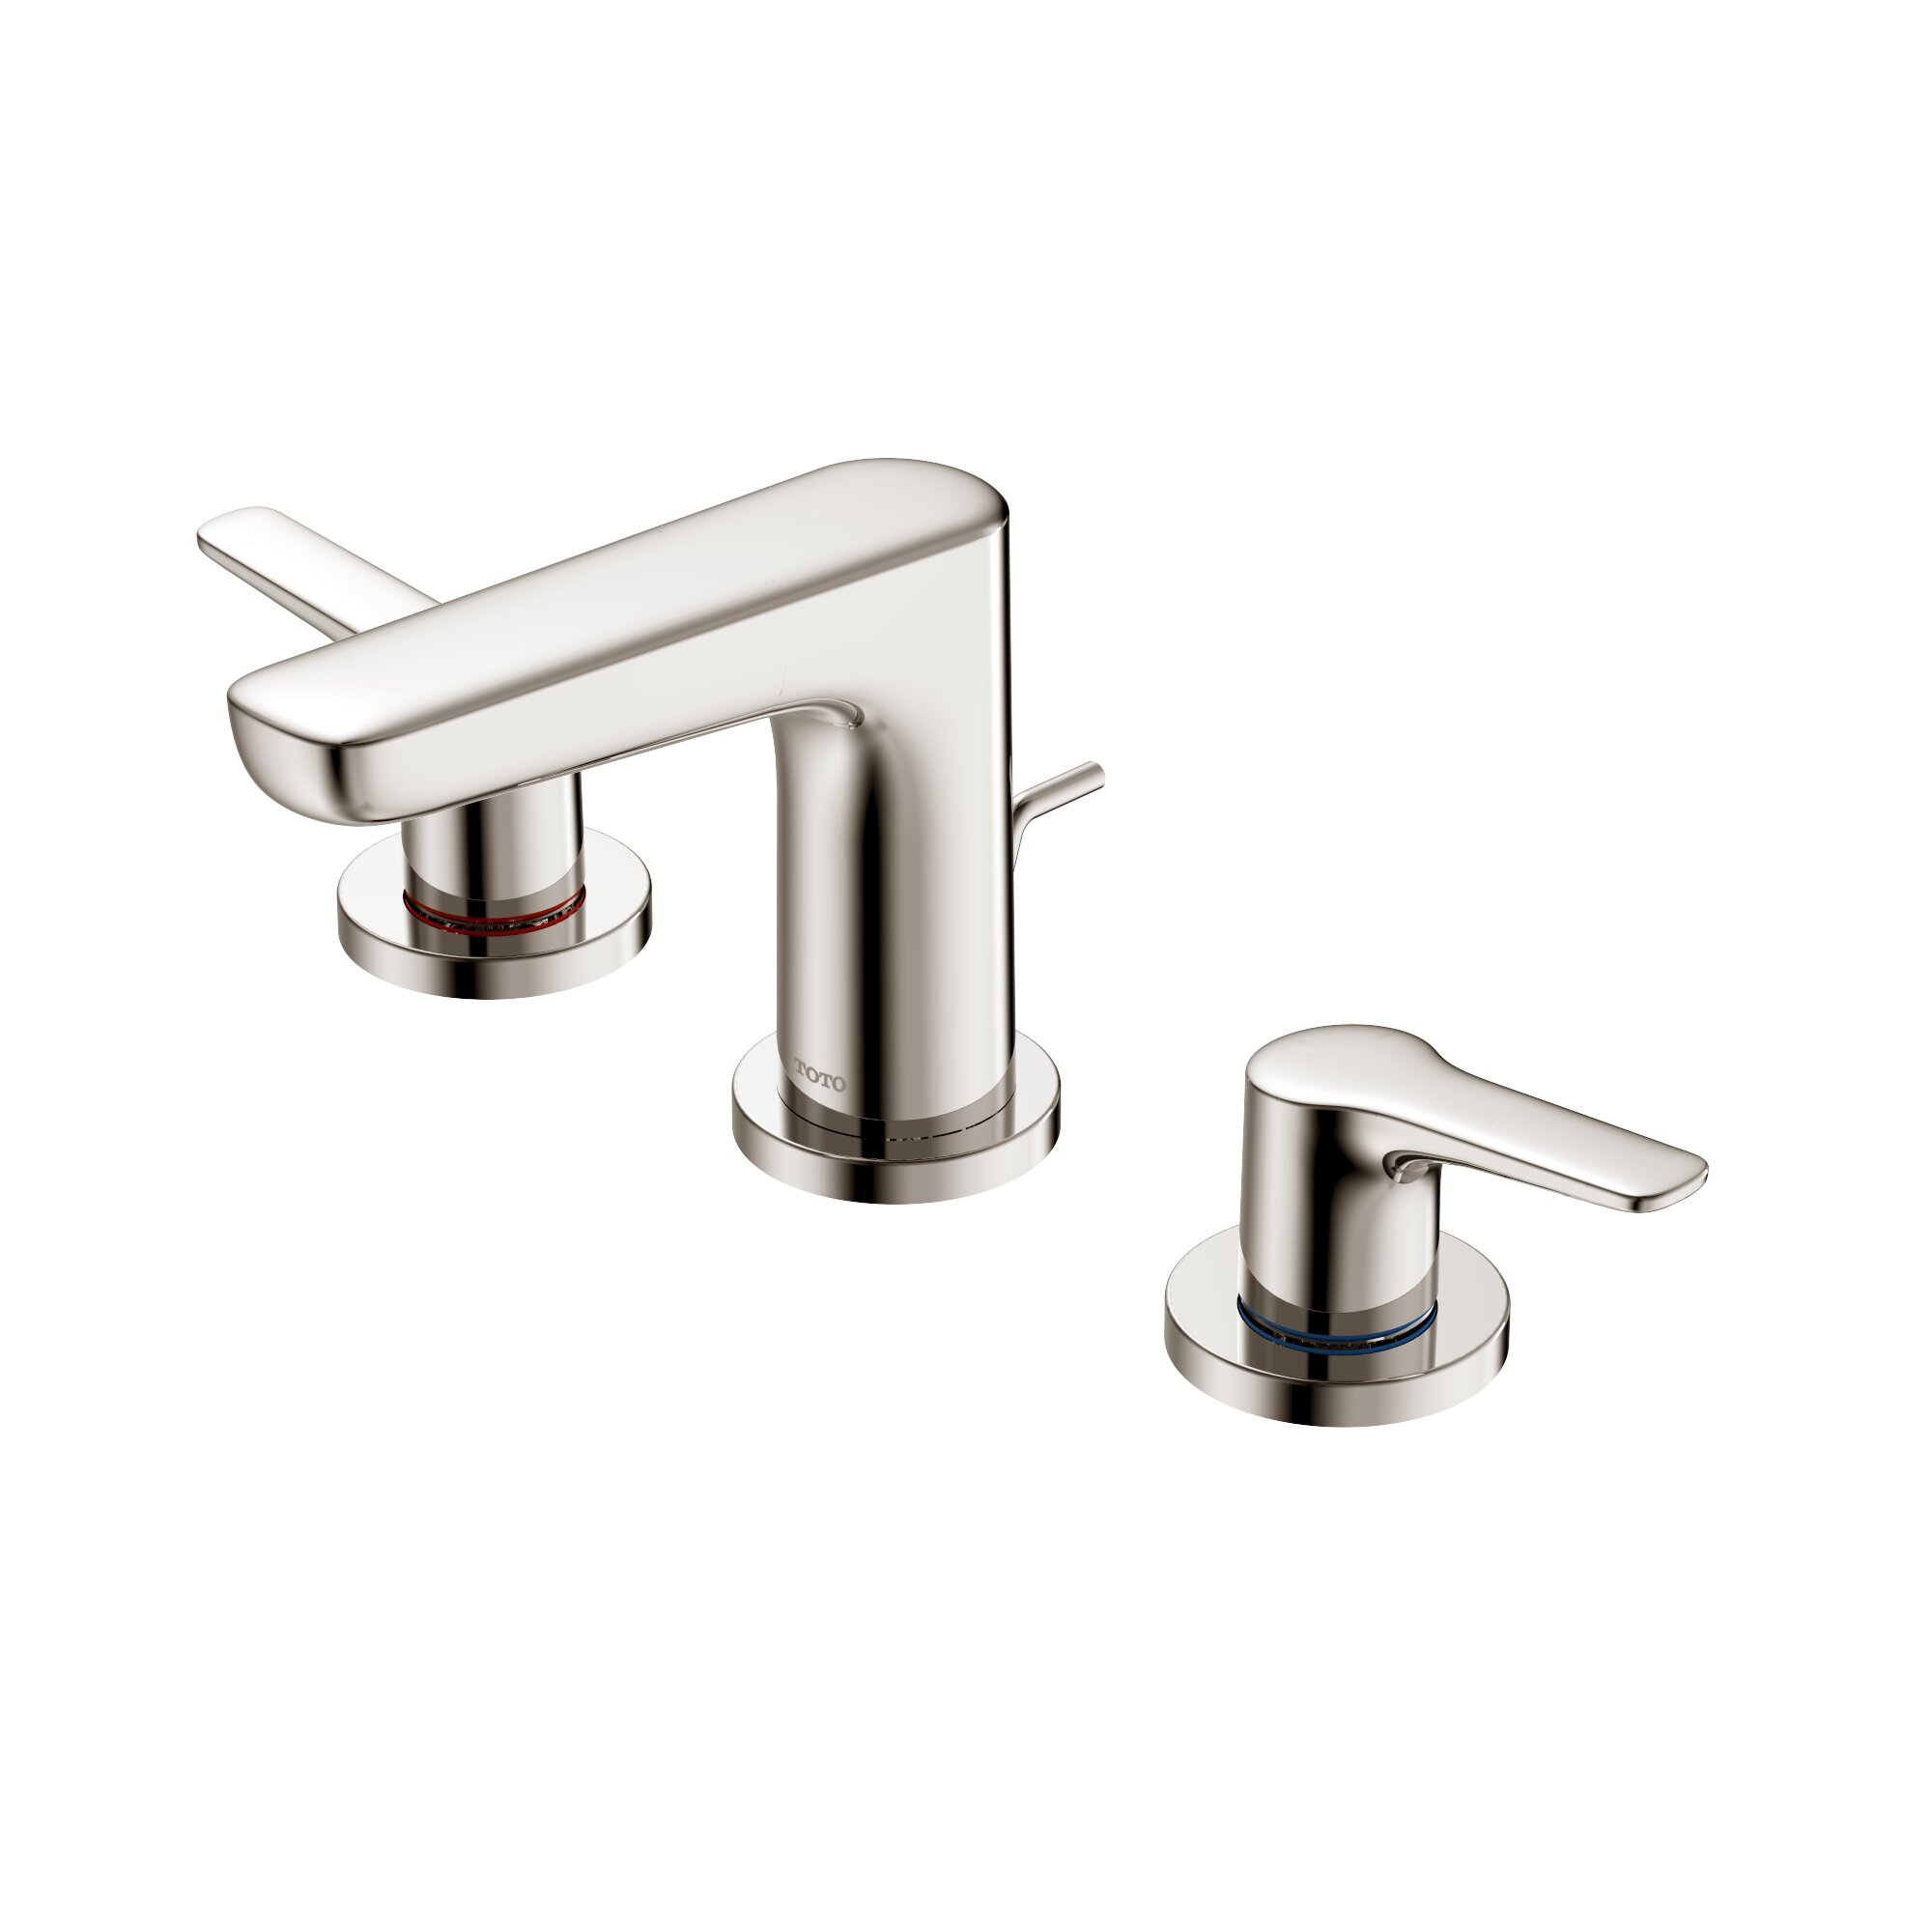 Toto Gs Widespread Bathroom Faucet With Drain Assembly Wayfair